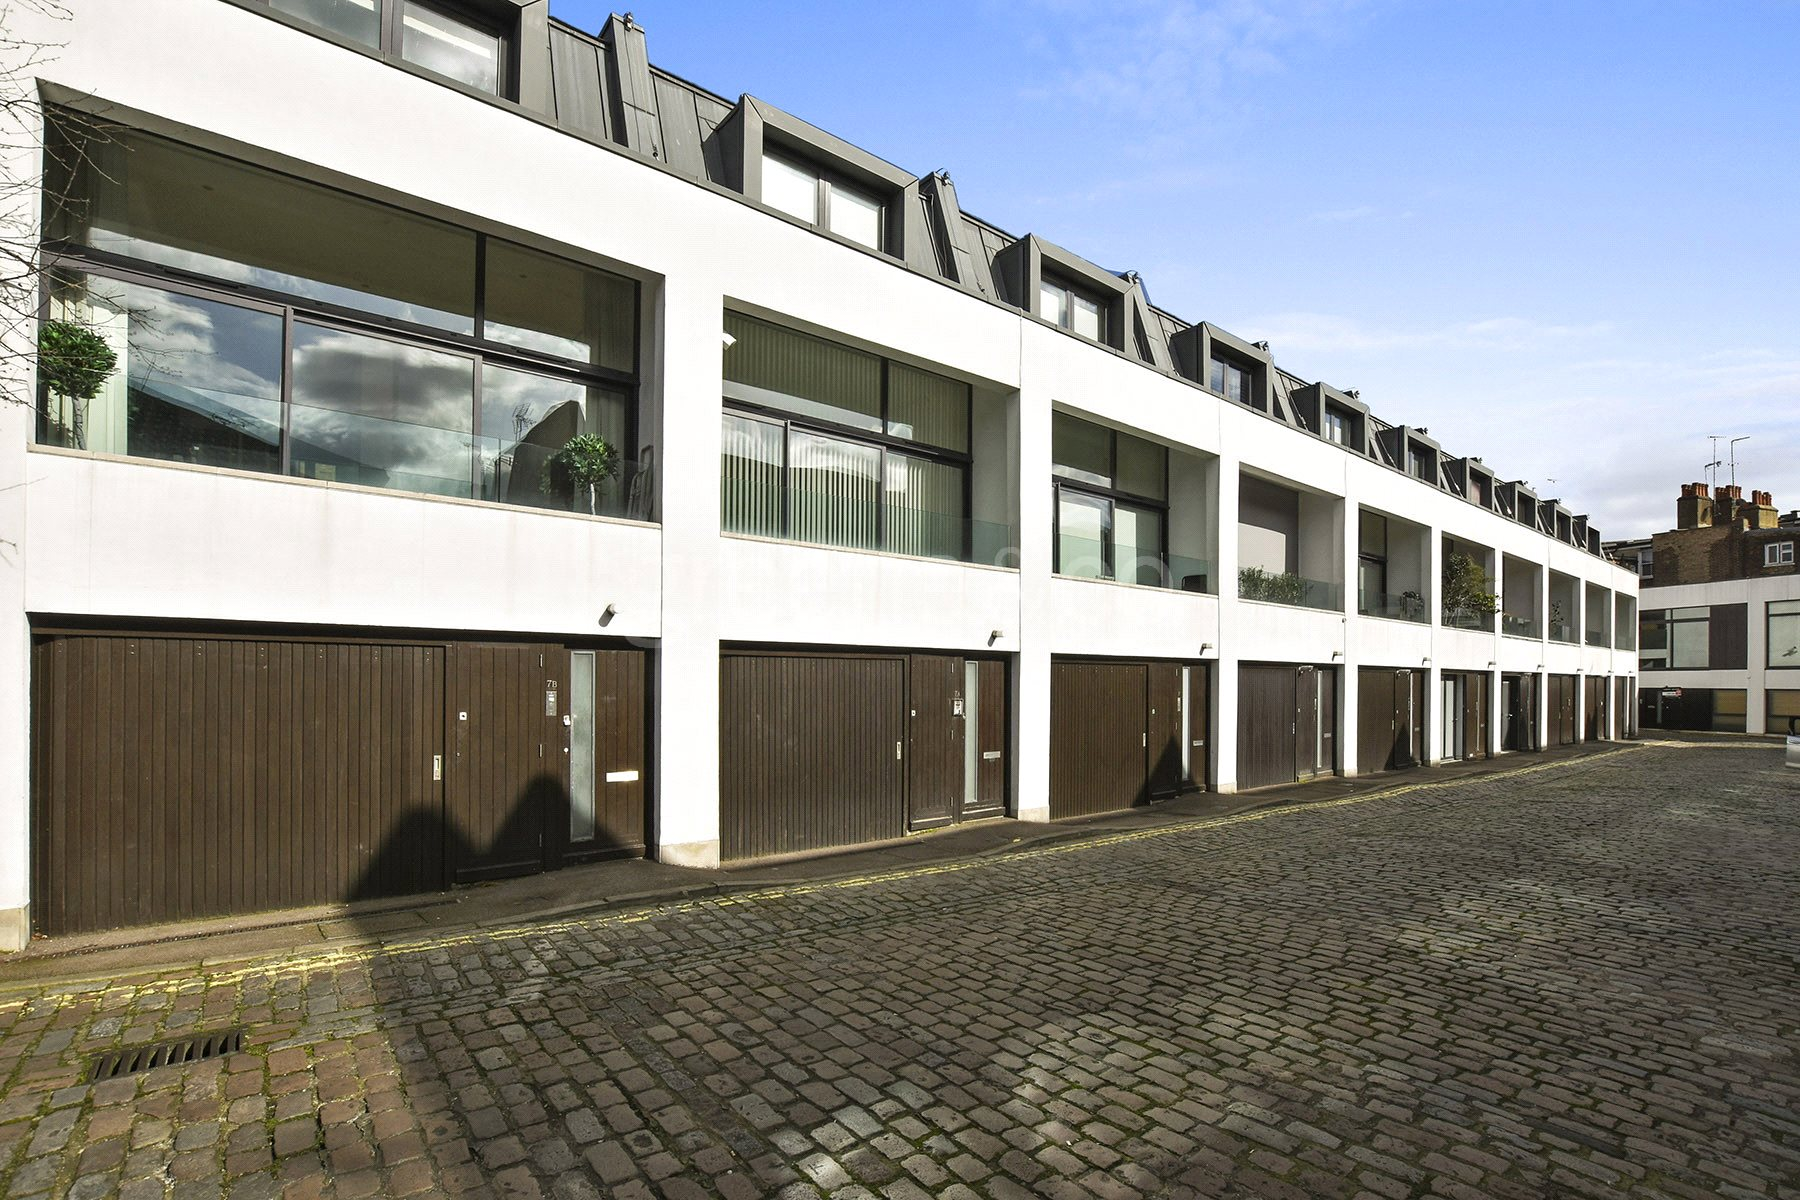 3 Bedrooms House for sale in Shirland Mews, London, W9